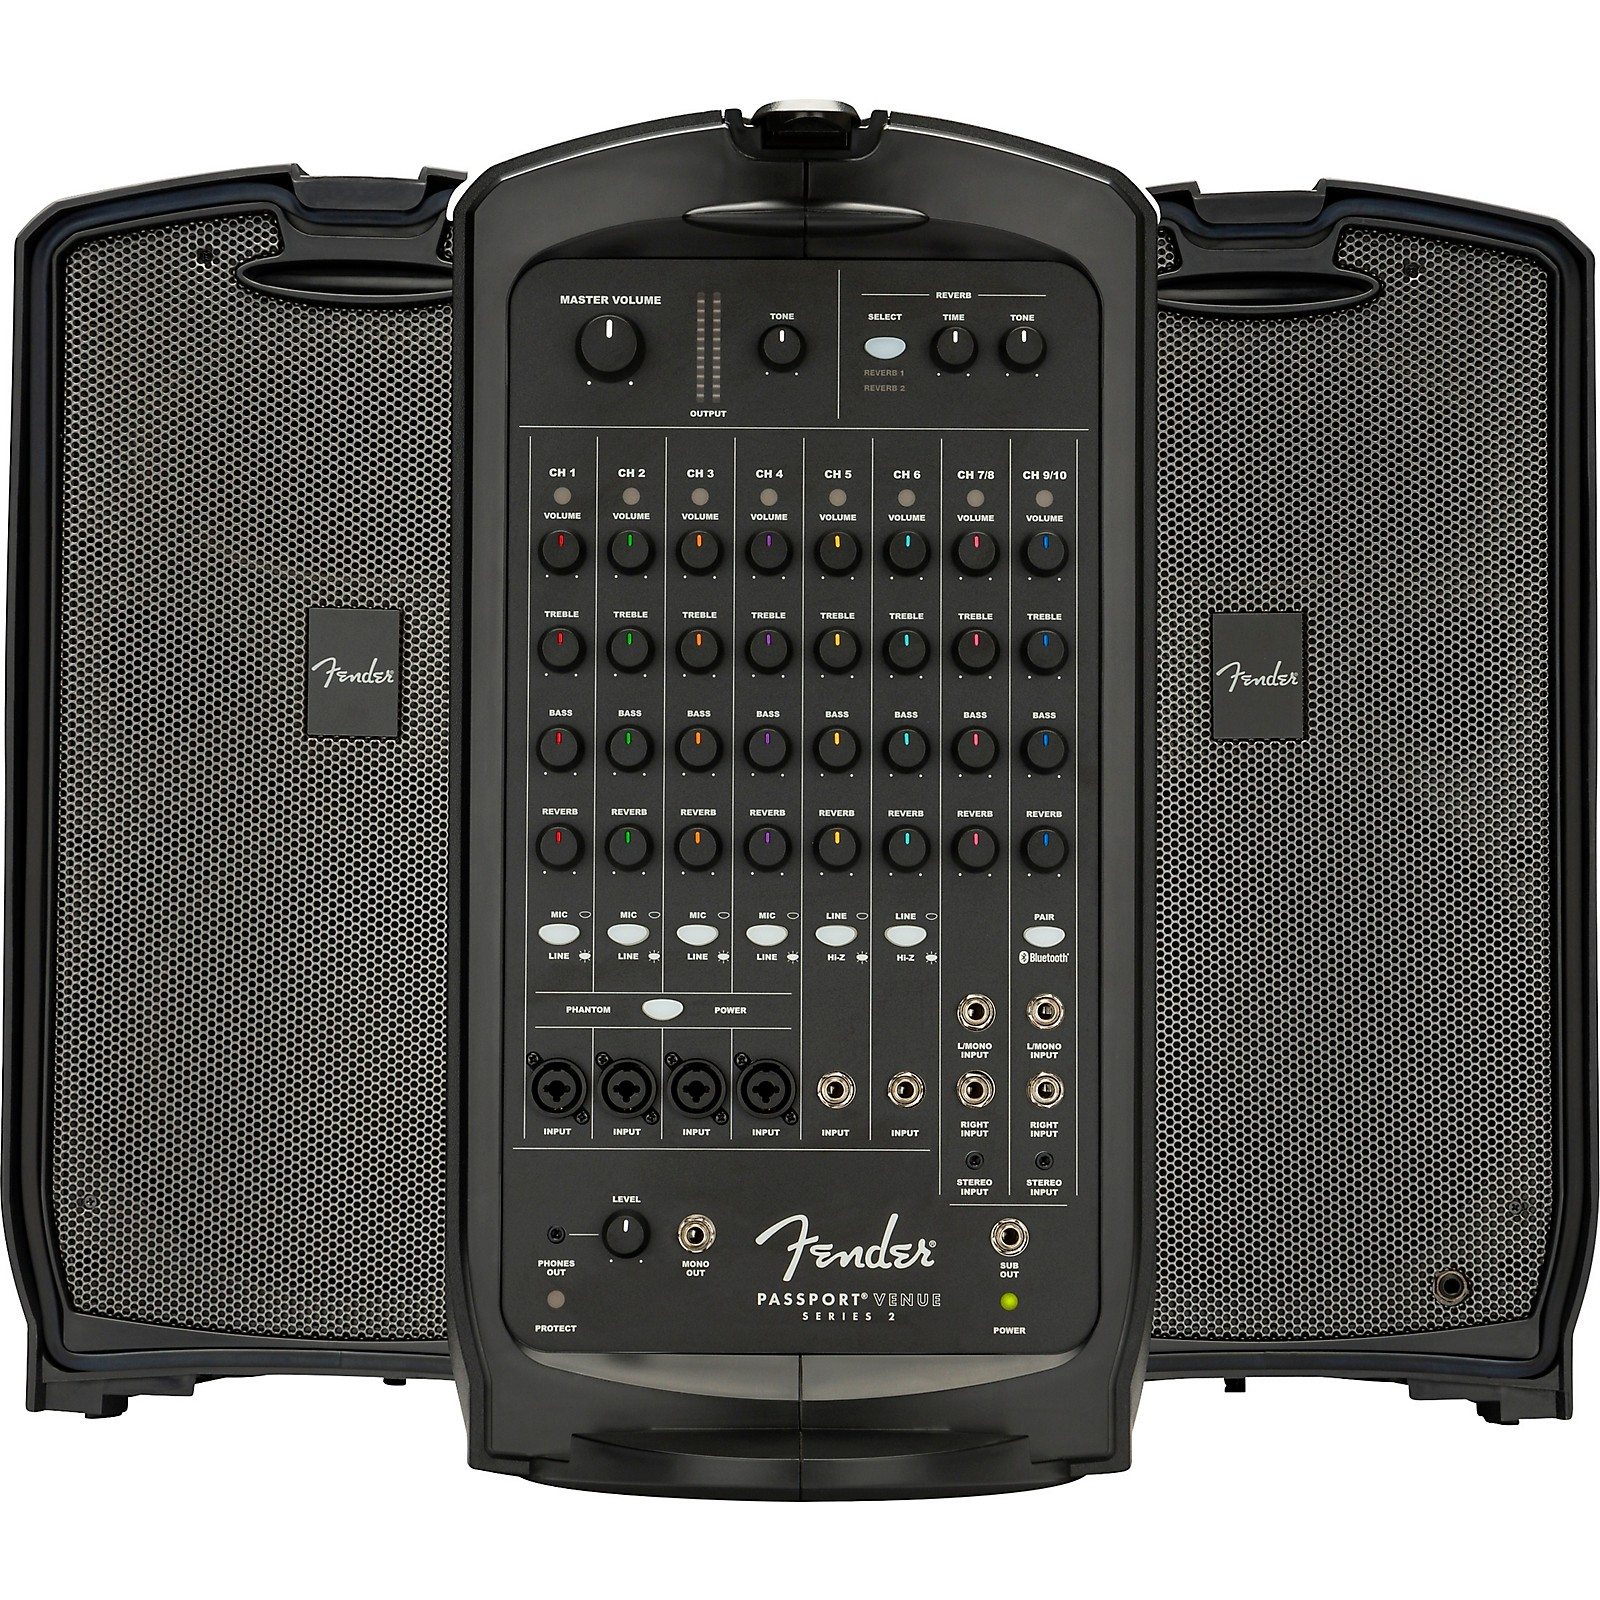 Fender Passport Venue Series 2 600W Portable PA System